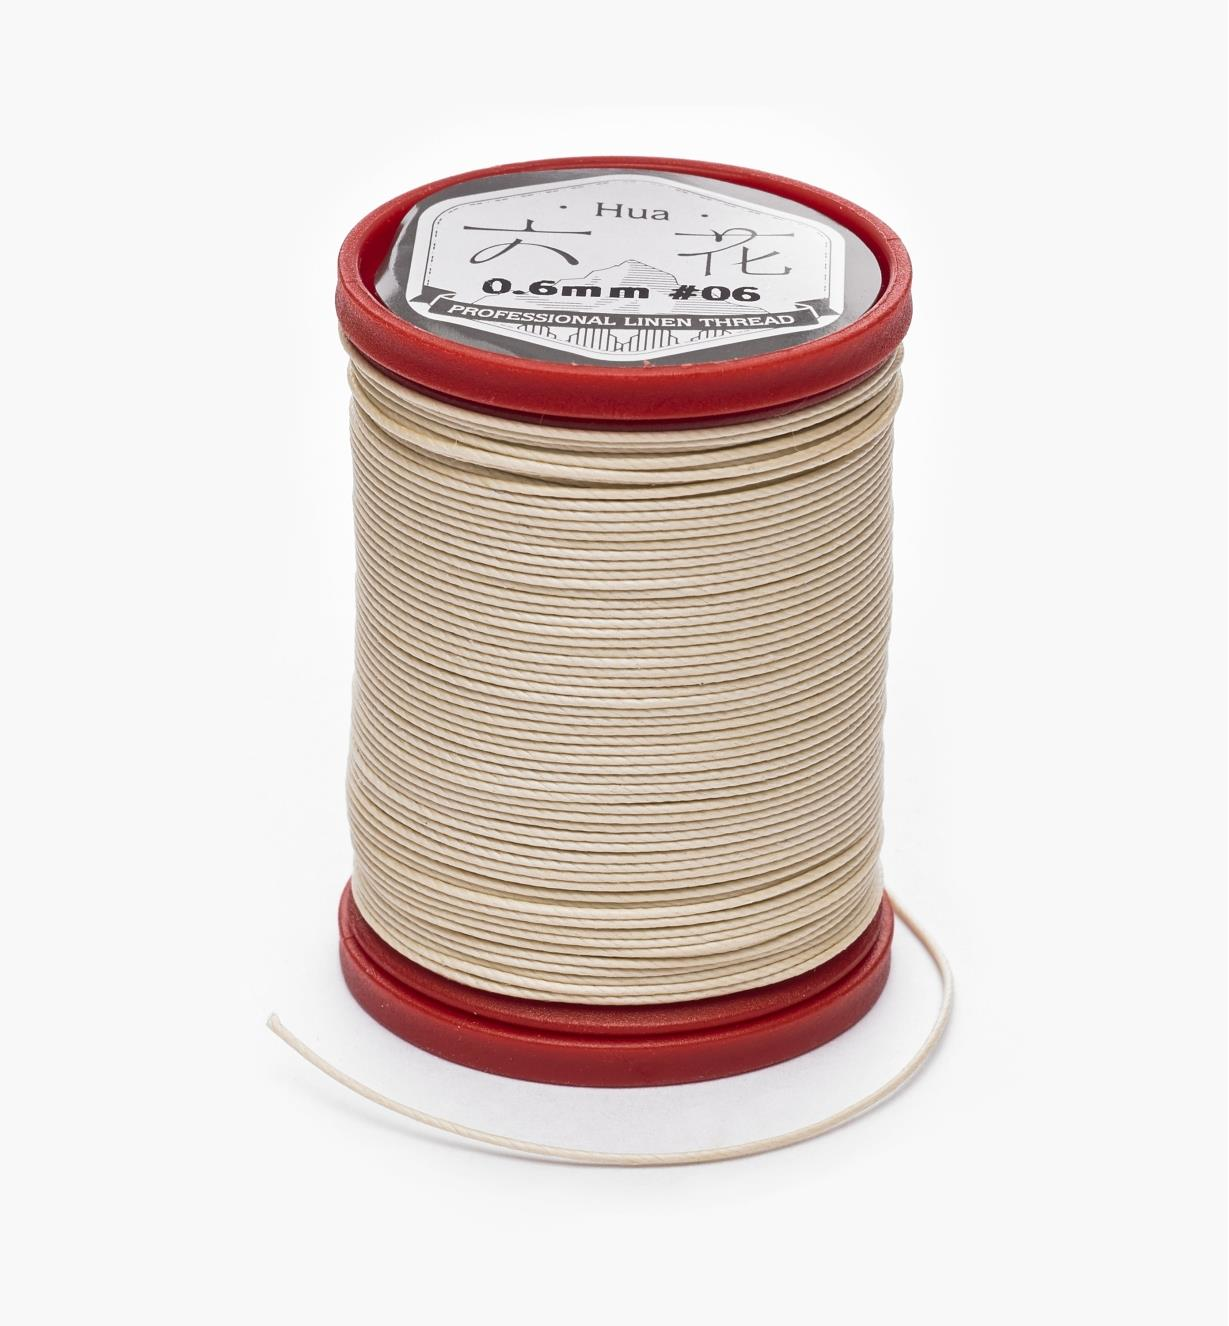 97K0912 - 0.6mm Cream Waxed Linen Thread